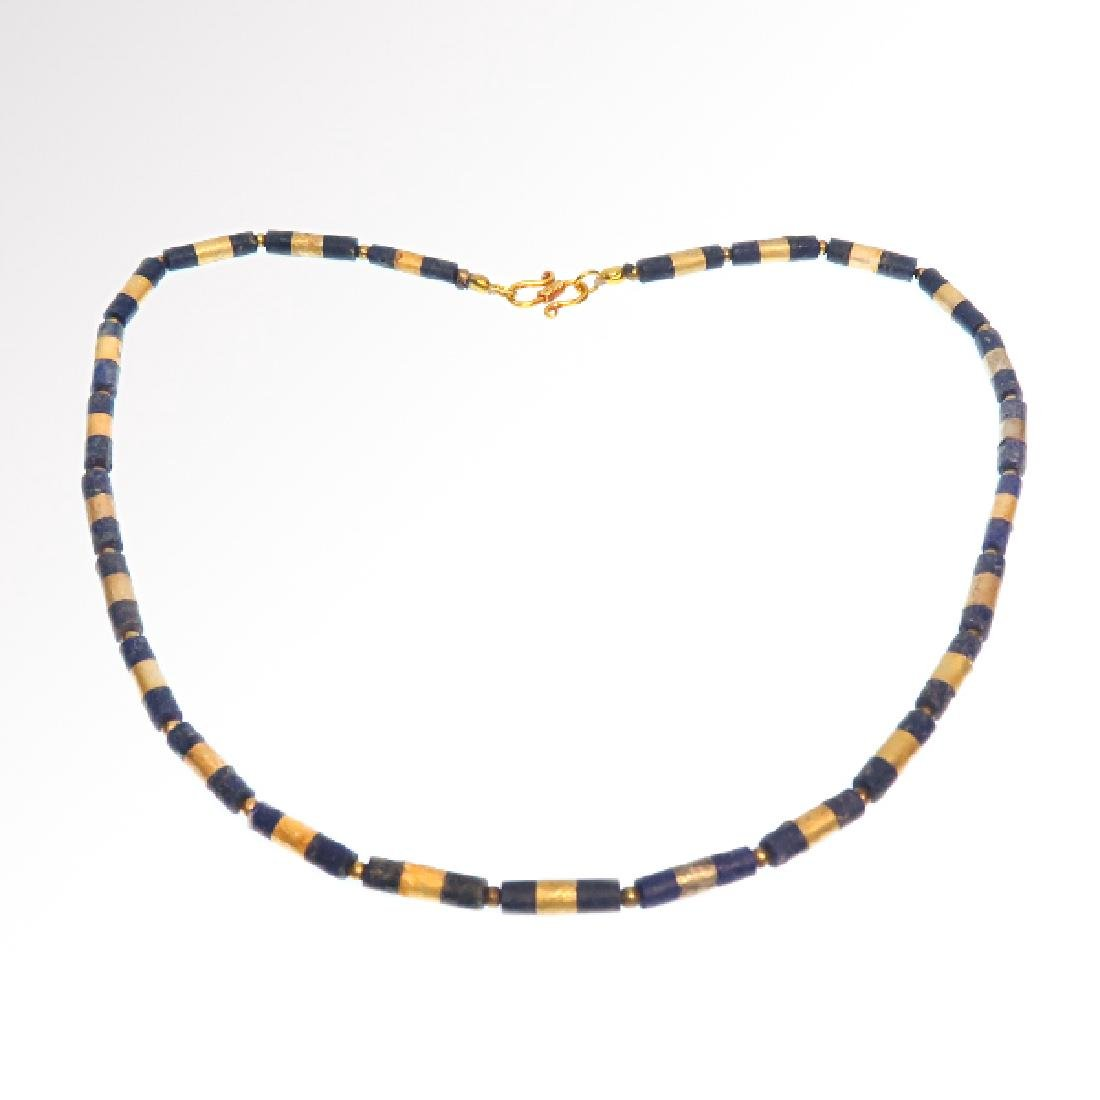 Egyptian Lapis and Gold Necklace, c. 300-200 B.C.